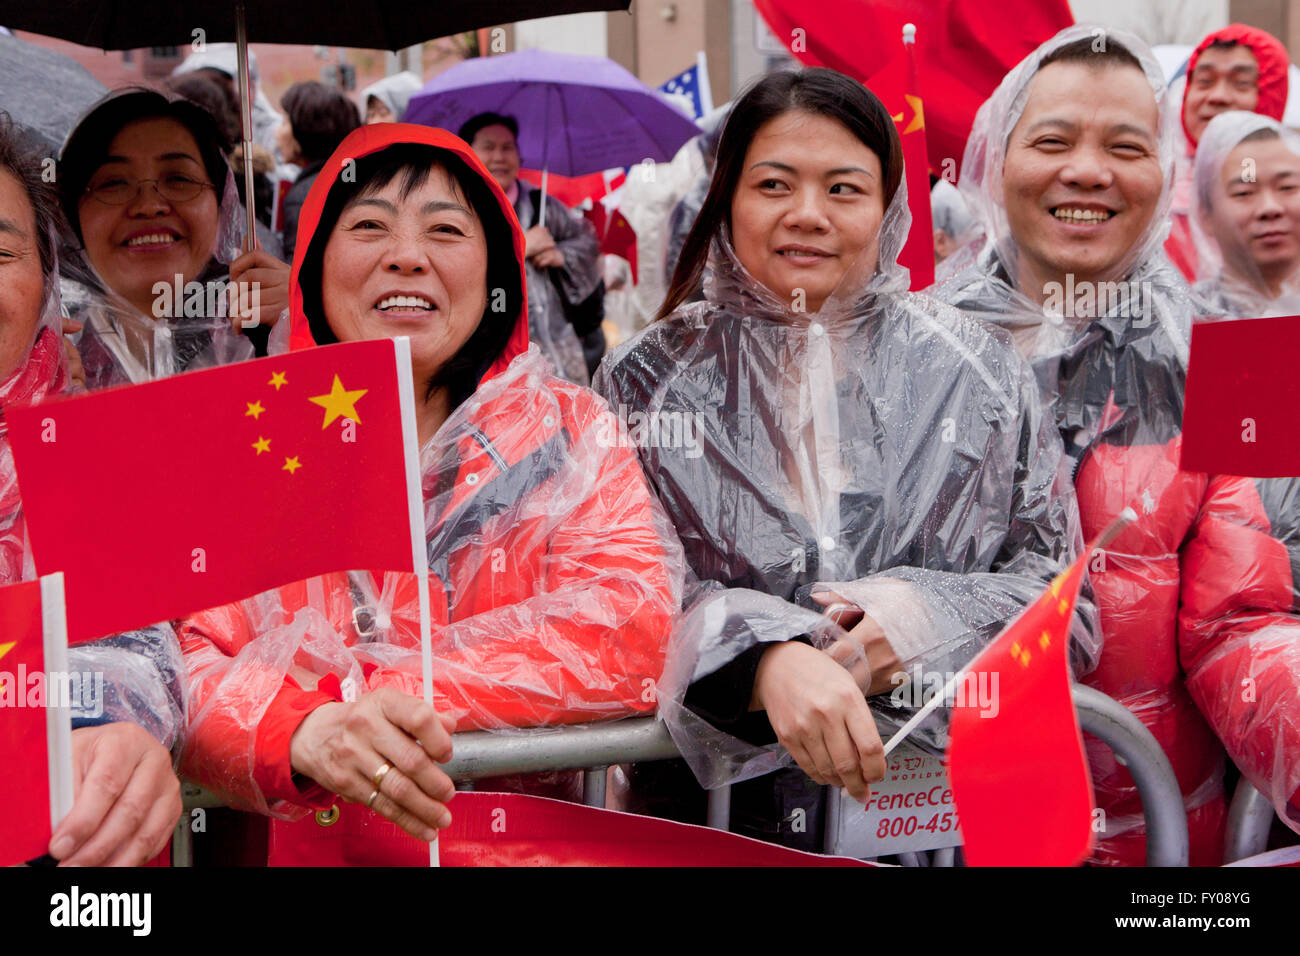 Chinese-Americans hold signs of support and welcome as president Xi Jinping is to arrive at the Nuclear Security - Stock Image